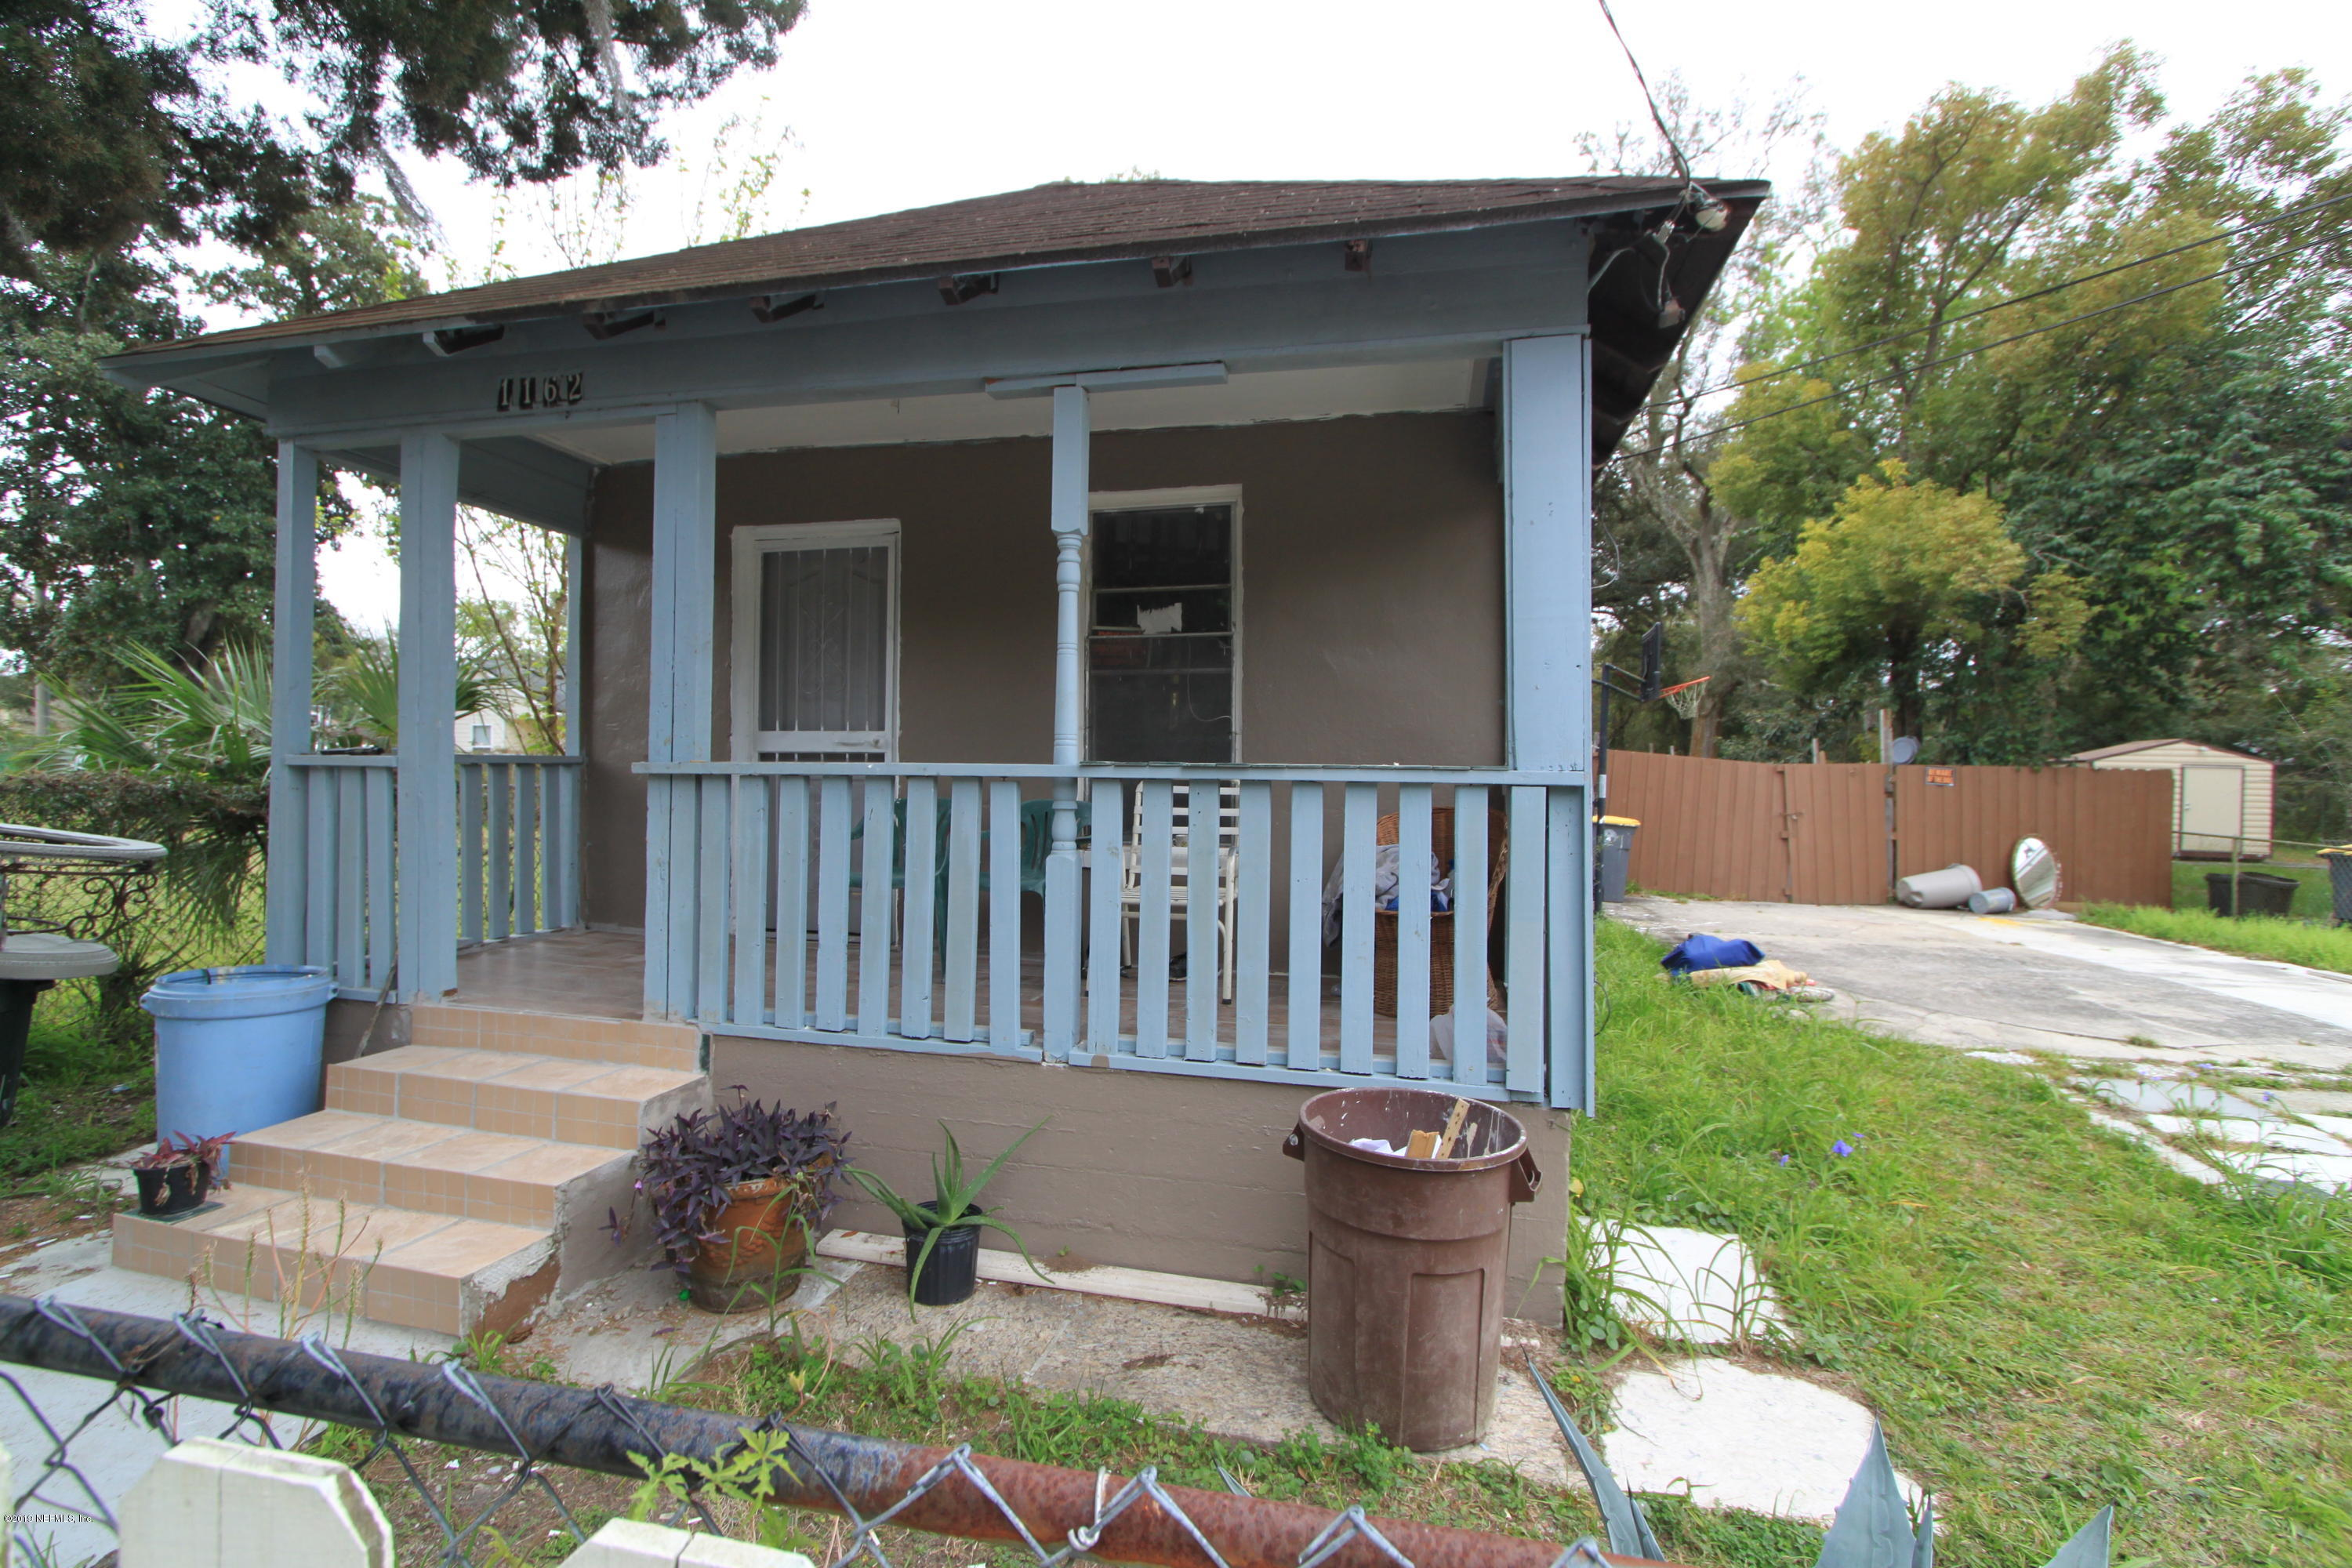 1162 24TH, JACKSONVILLE, FLORIDA 32206, 2 Bedrooms Bedrooms, ,1 BathroomBathrooms,Residential - single family,For sale,24TH,980420